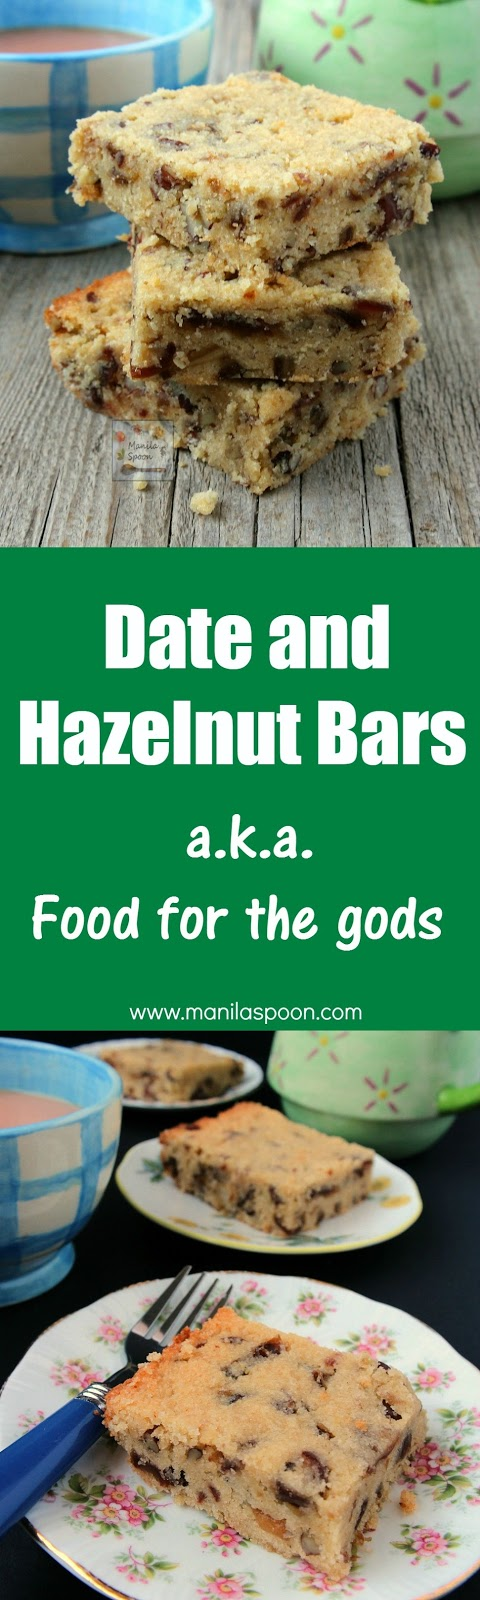 """Known locally as """"food for the gods"""" this is a holiday-perfect bar that's rich, buttery, nutty and totally delicious! Use walnut, pecan, hazelnut or even cashews for the nuts. Regular and gluten-free option available. 